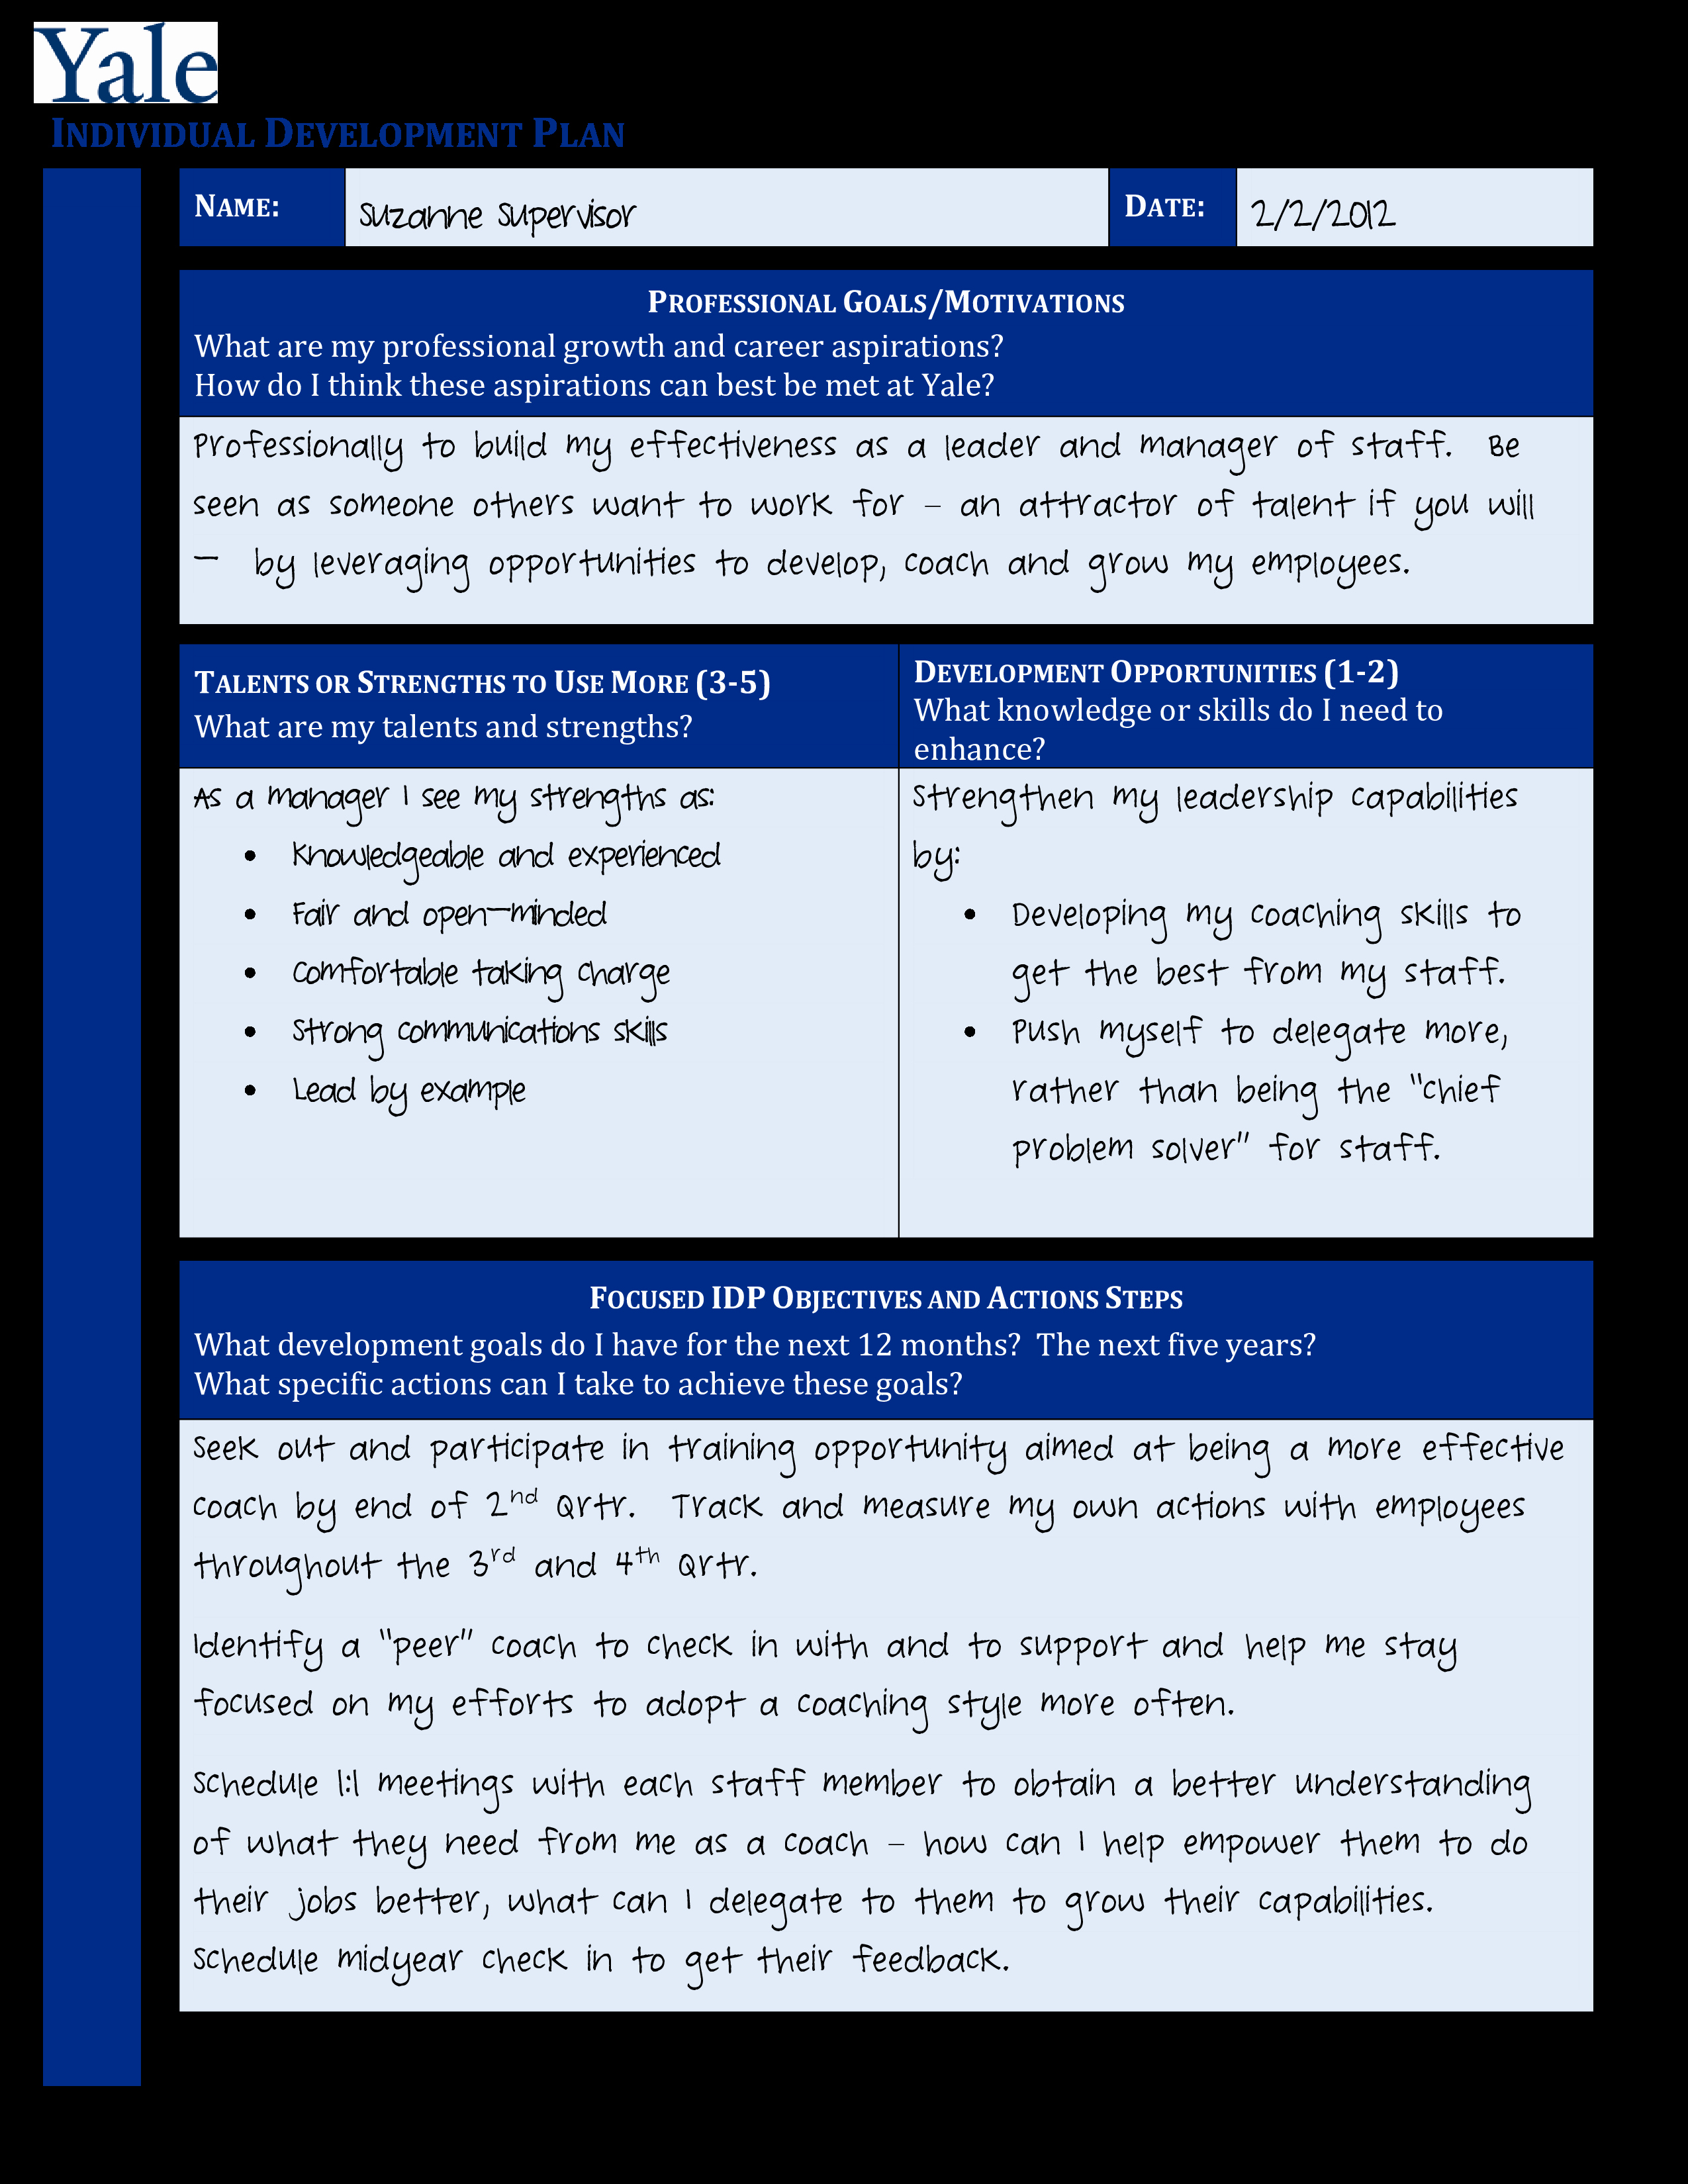 Individual Development Plan Template Best Of Free Individual Development